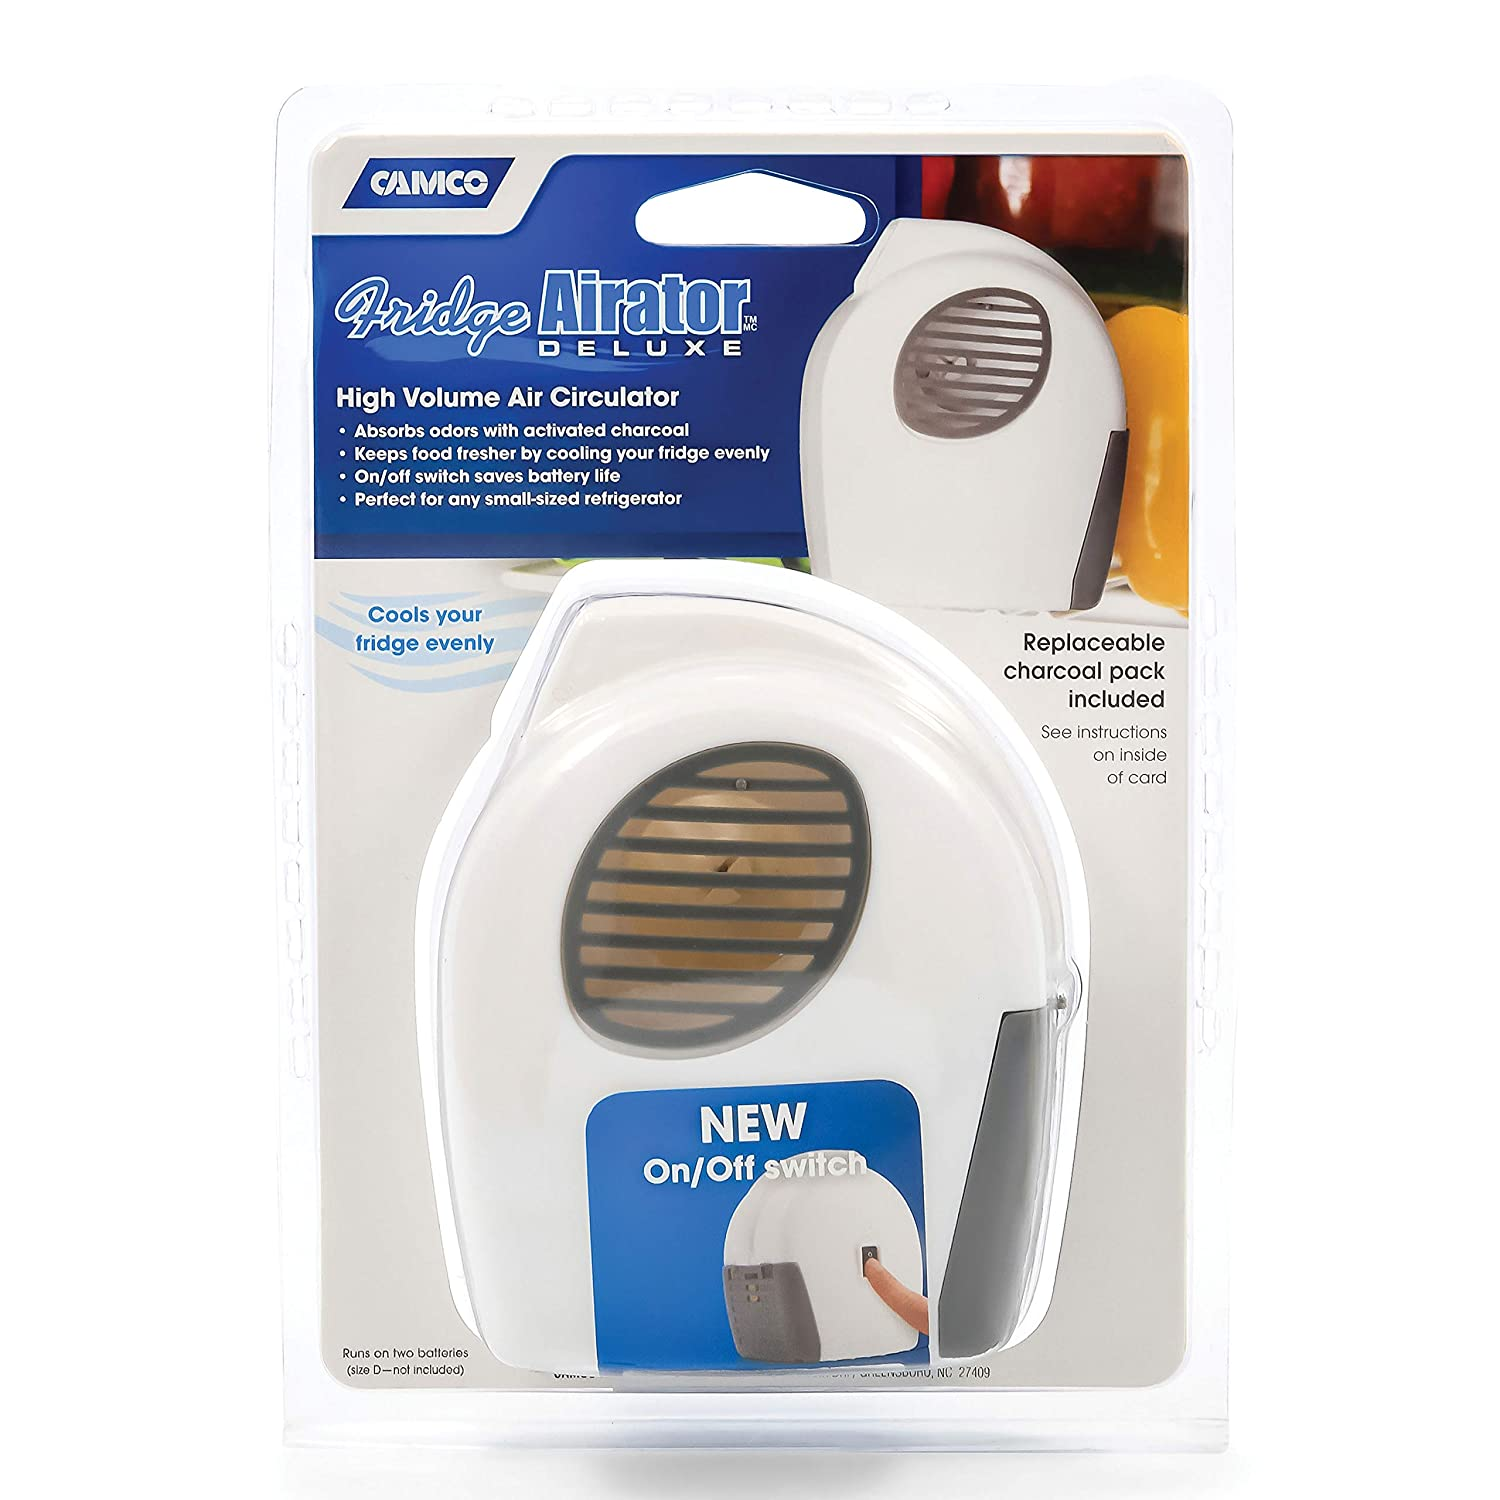 Camco Fridge Airator with On//Off Switch Absorbs Refrigerator Odors and Smells 44124 Space Efficient Compact Design Maintains Consistent RV Temperature